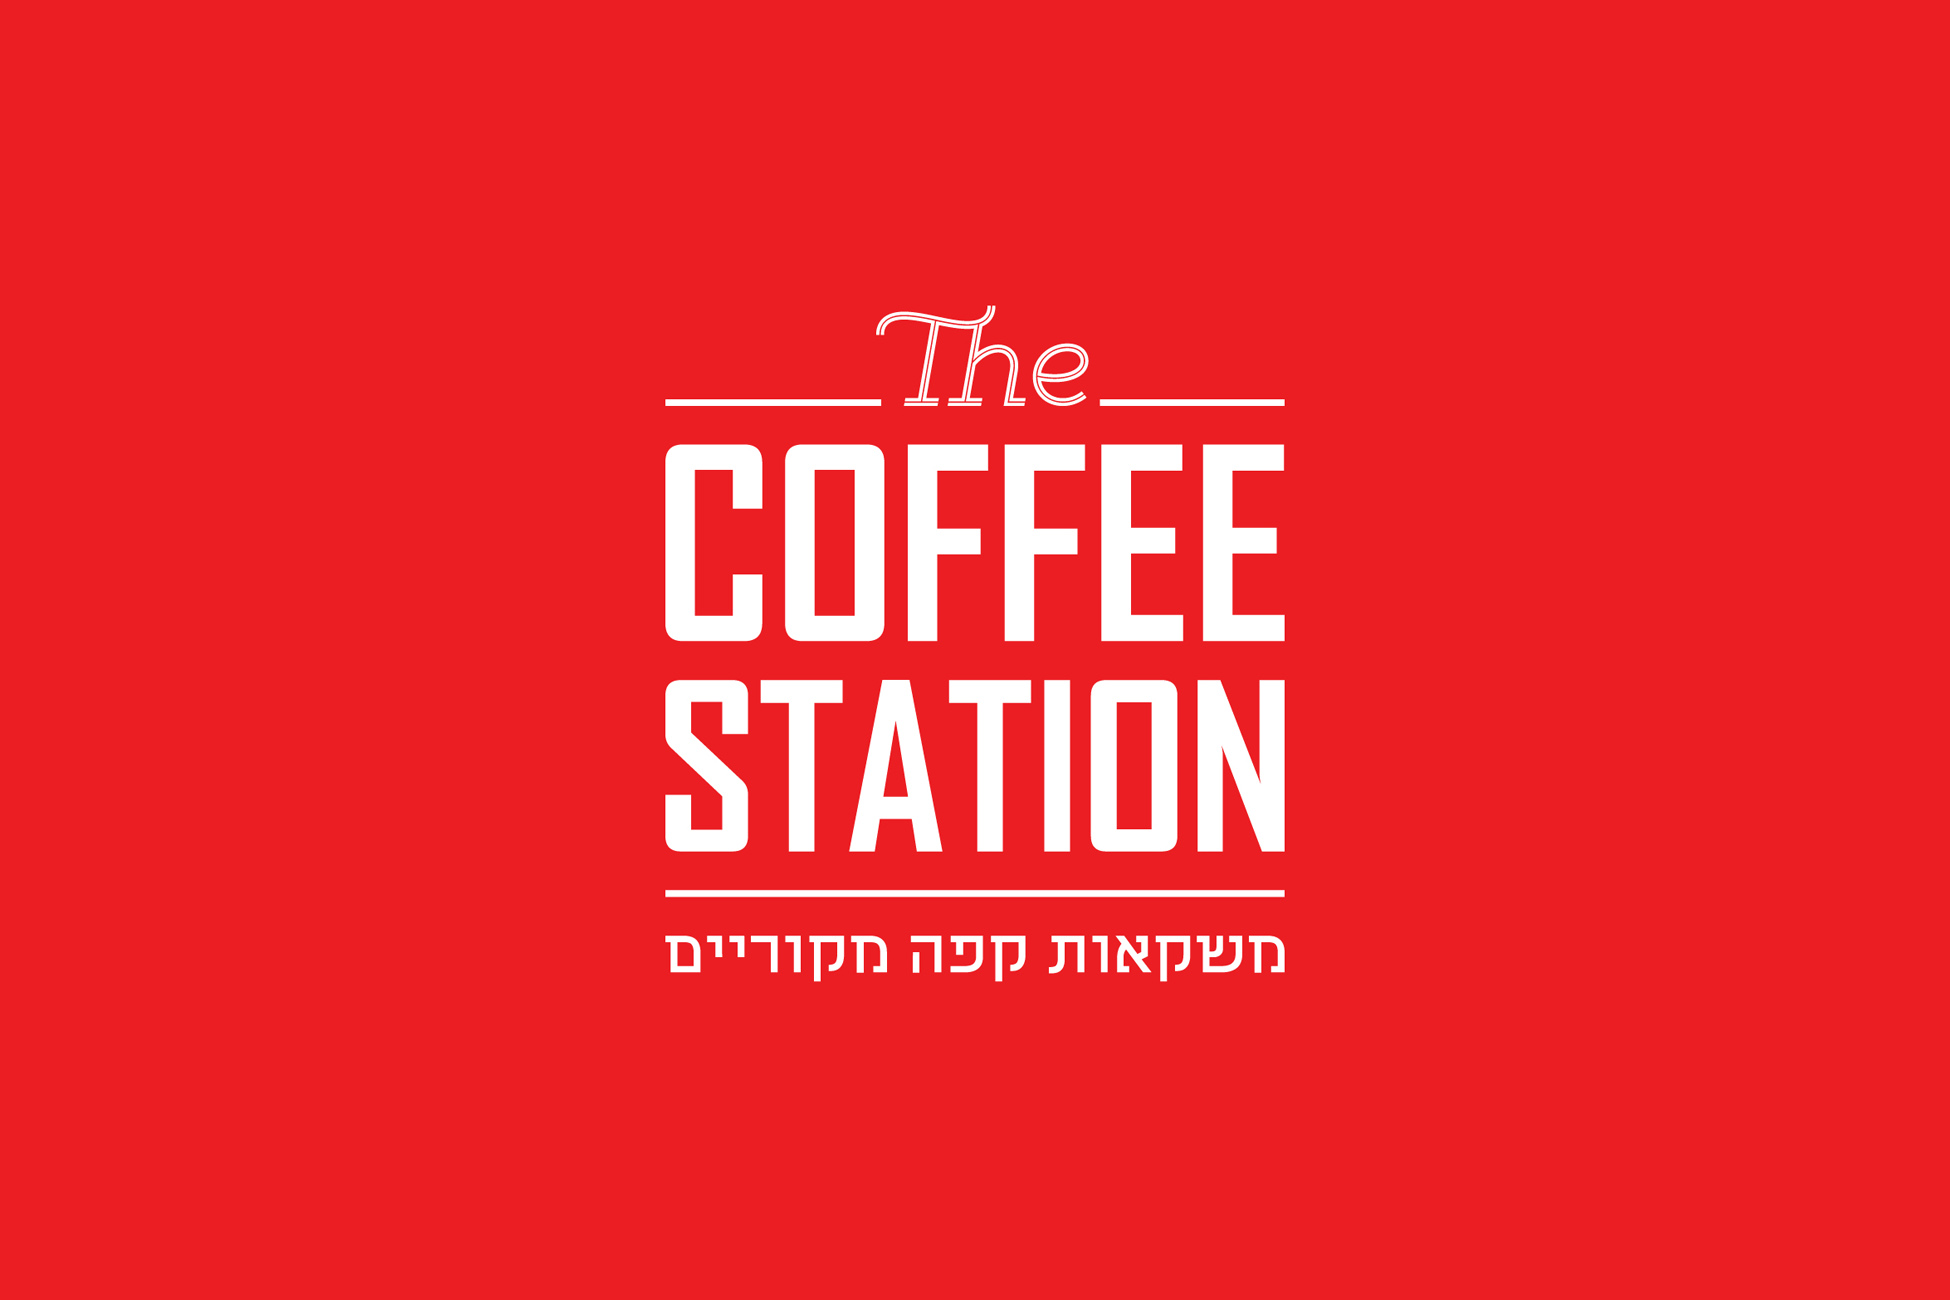 1_CoffeeStation_Sarona.jpg